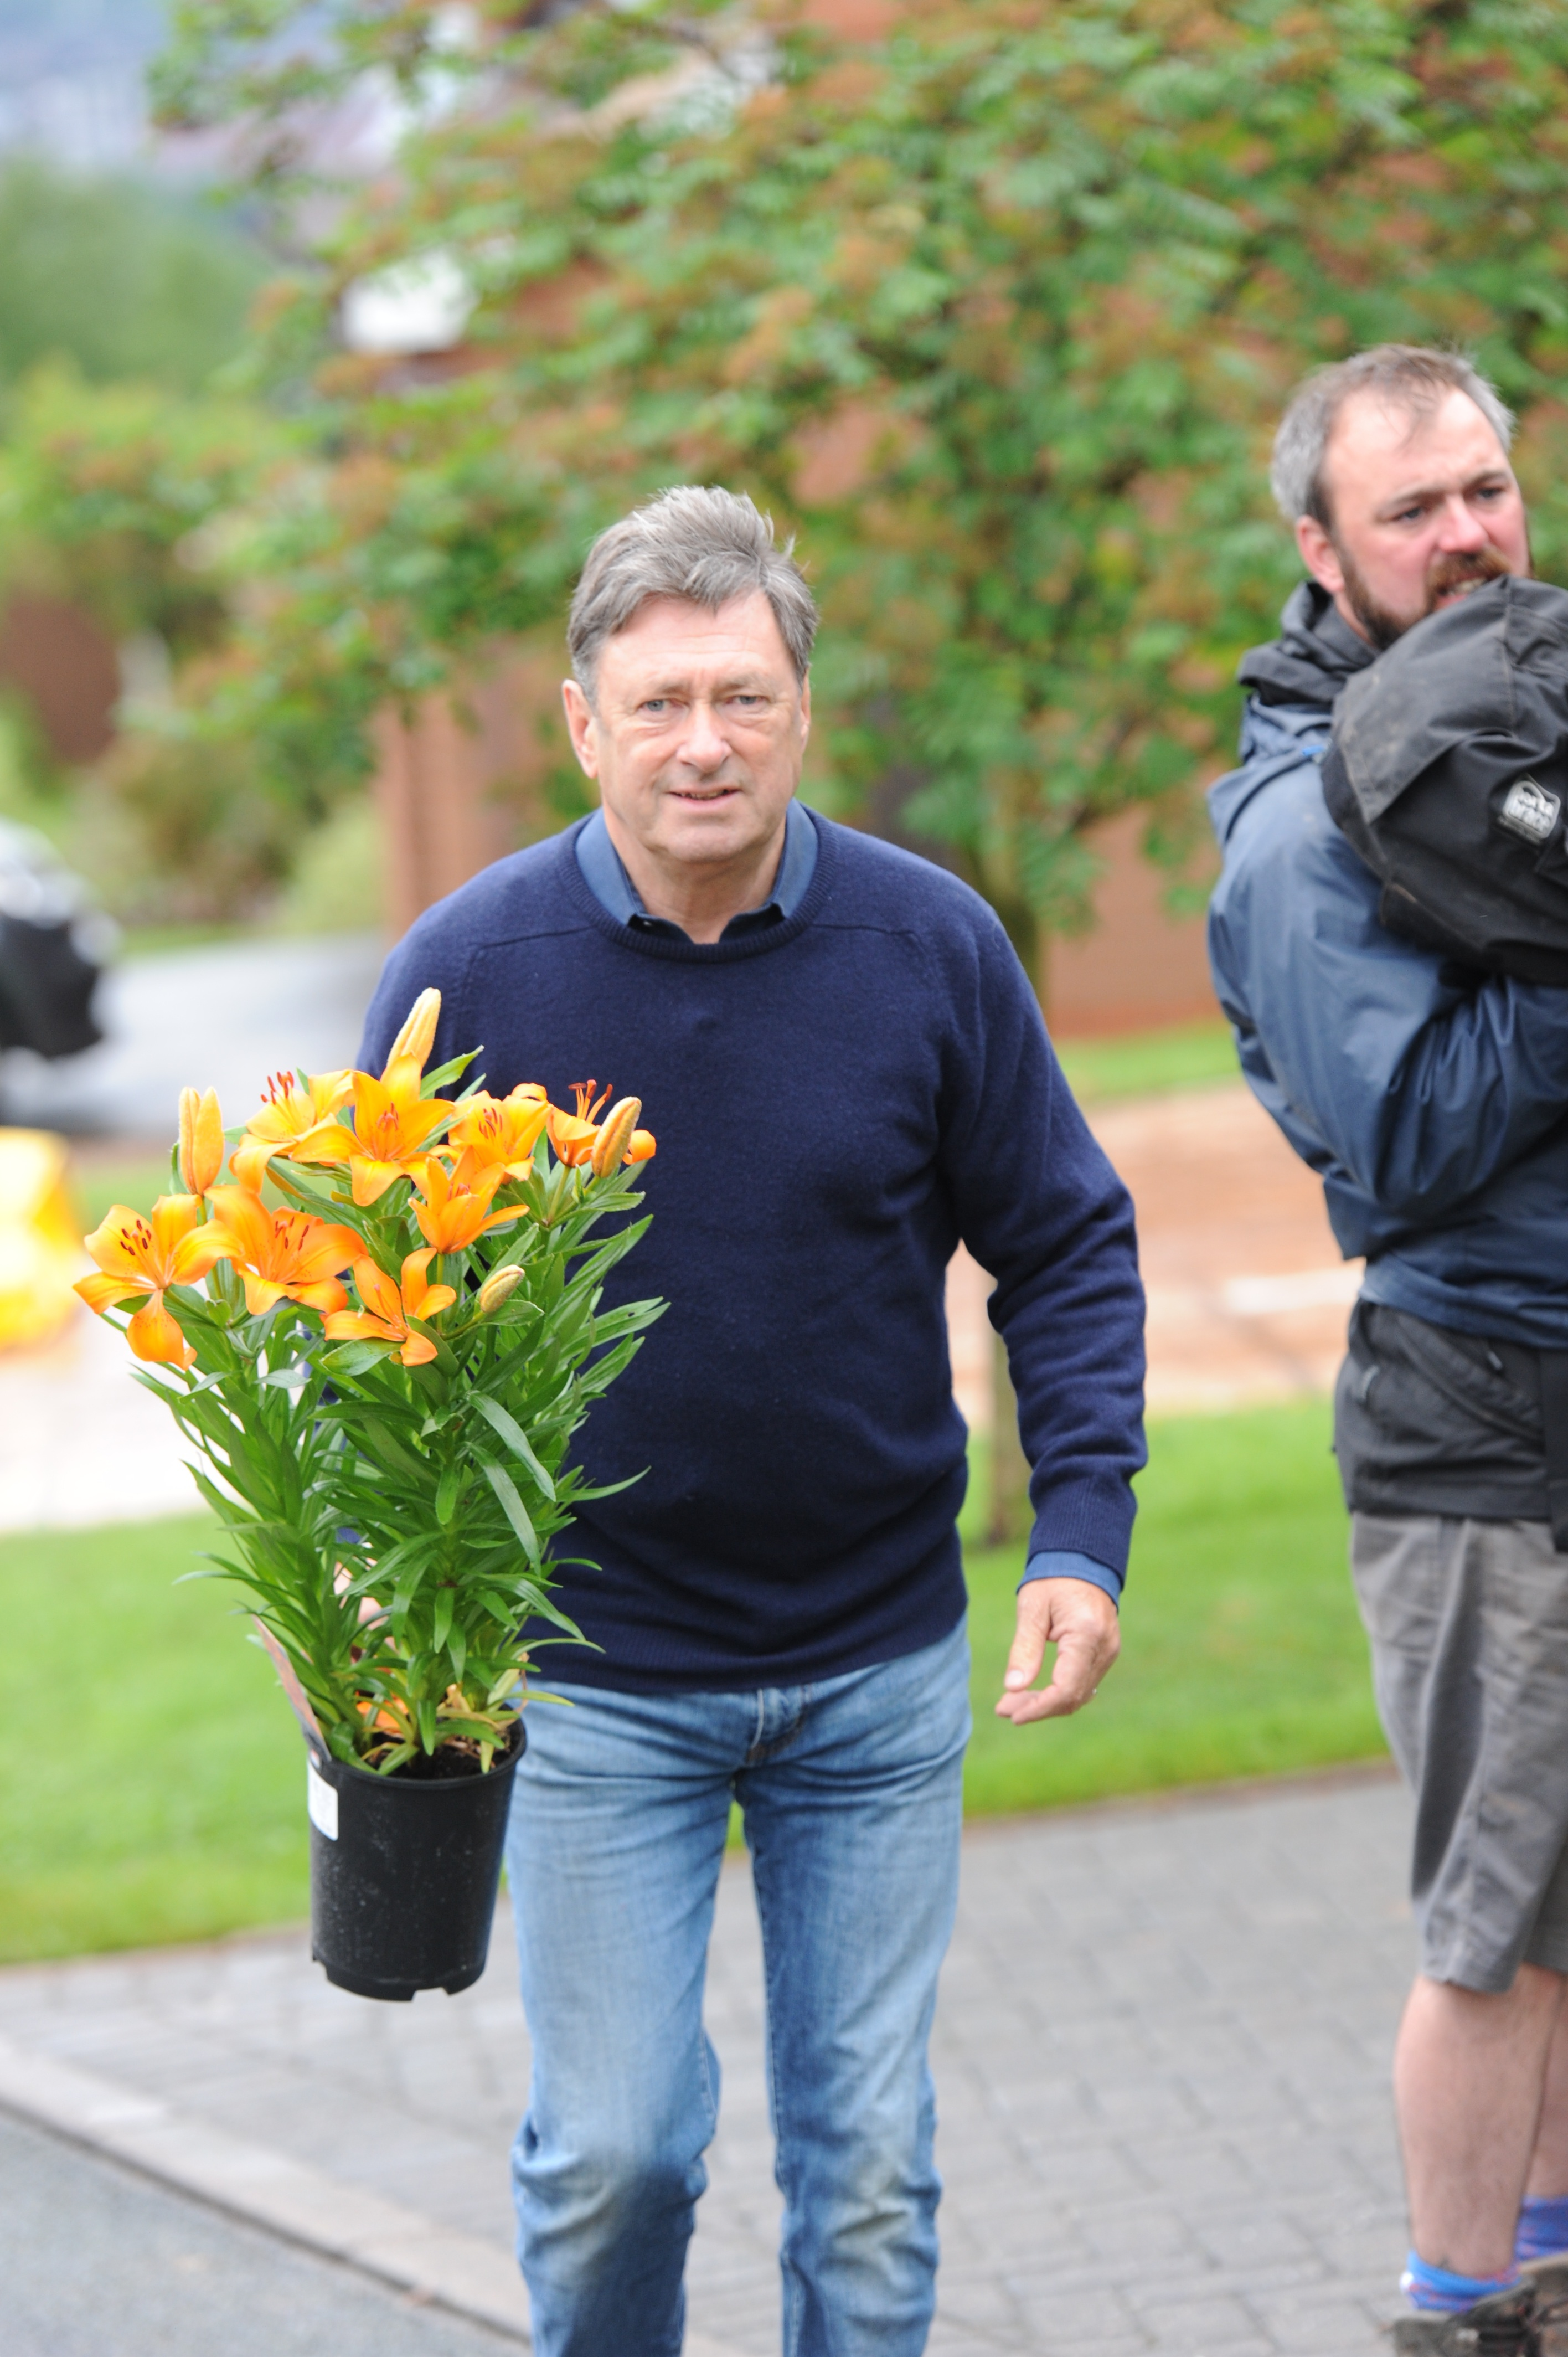 do you know a family that deserves a garden makeover by alan titchmarsh